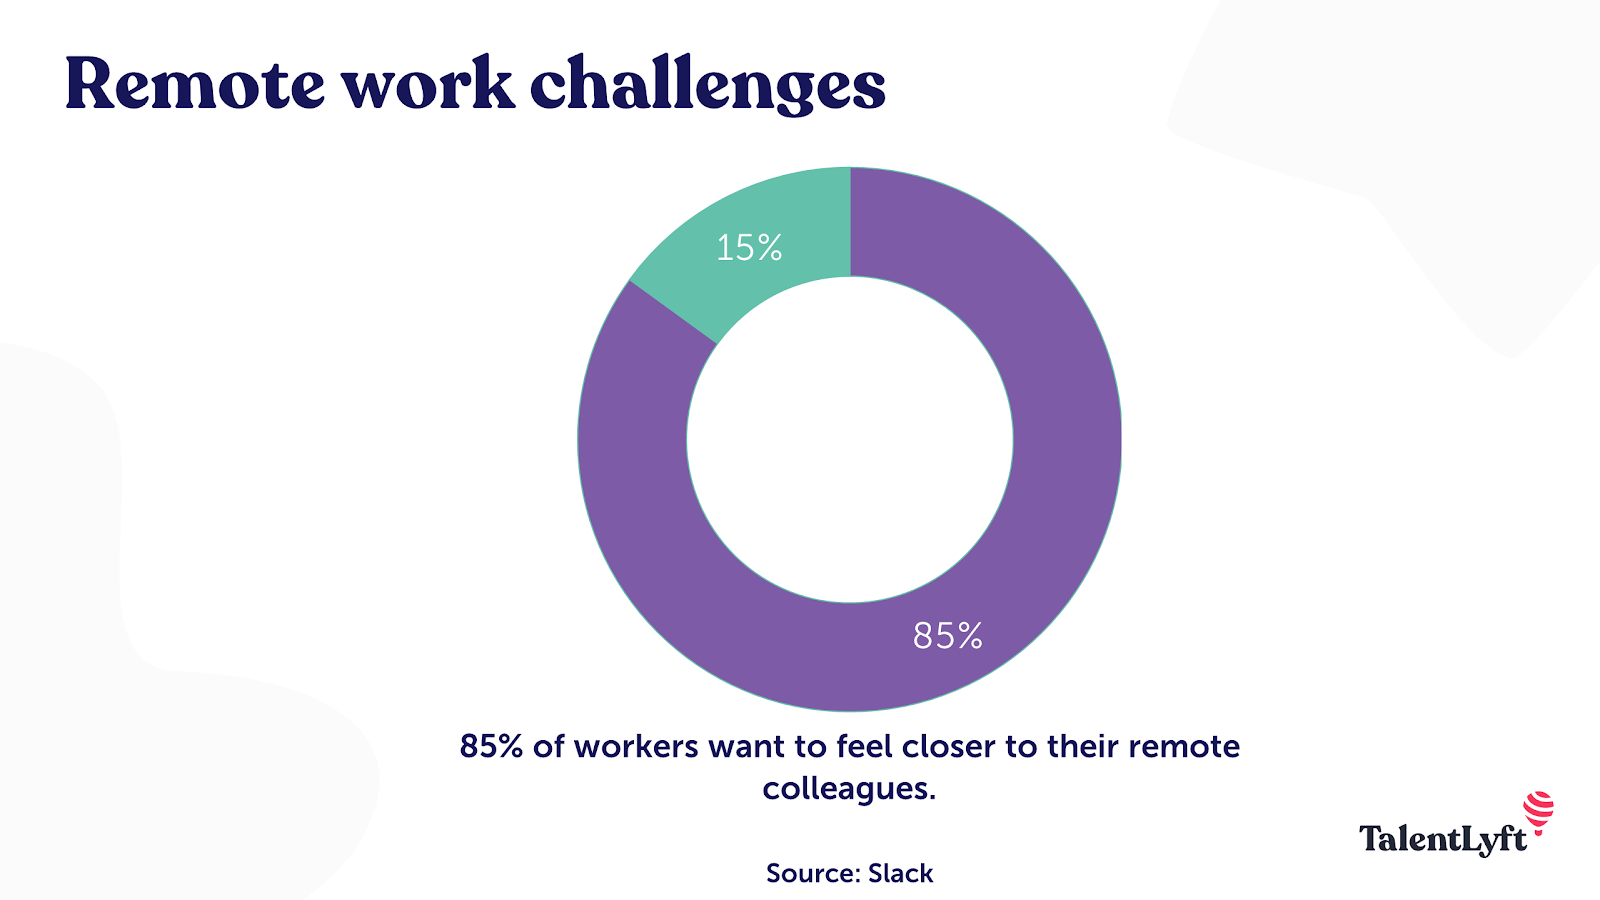 Remote work challenges and opportunities